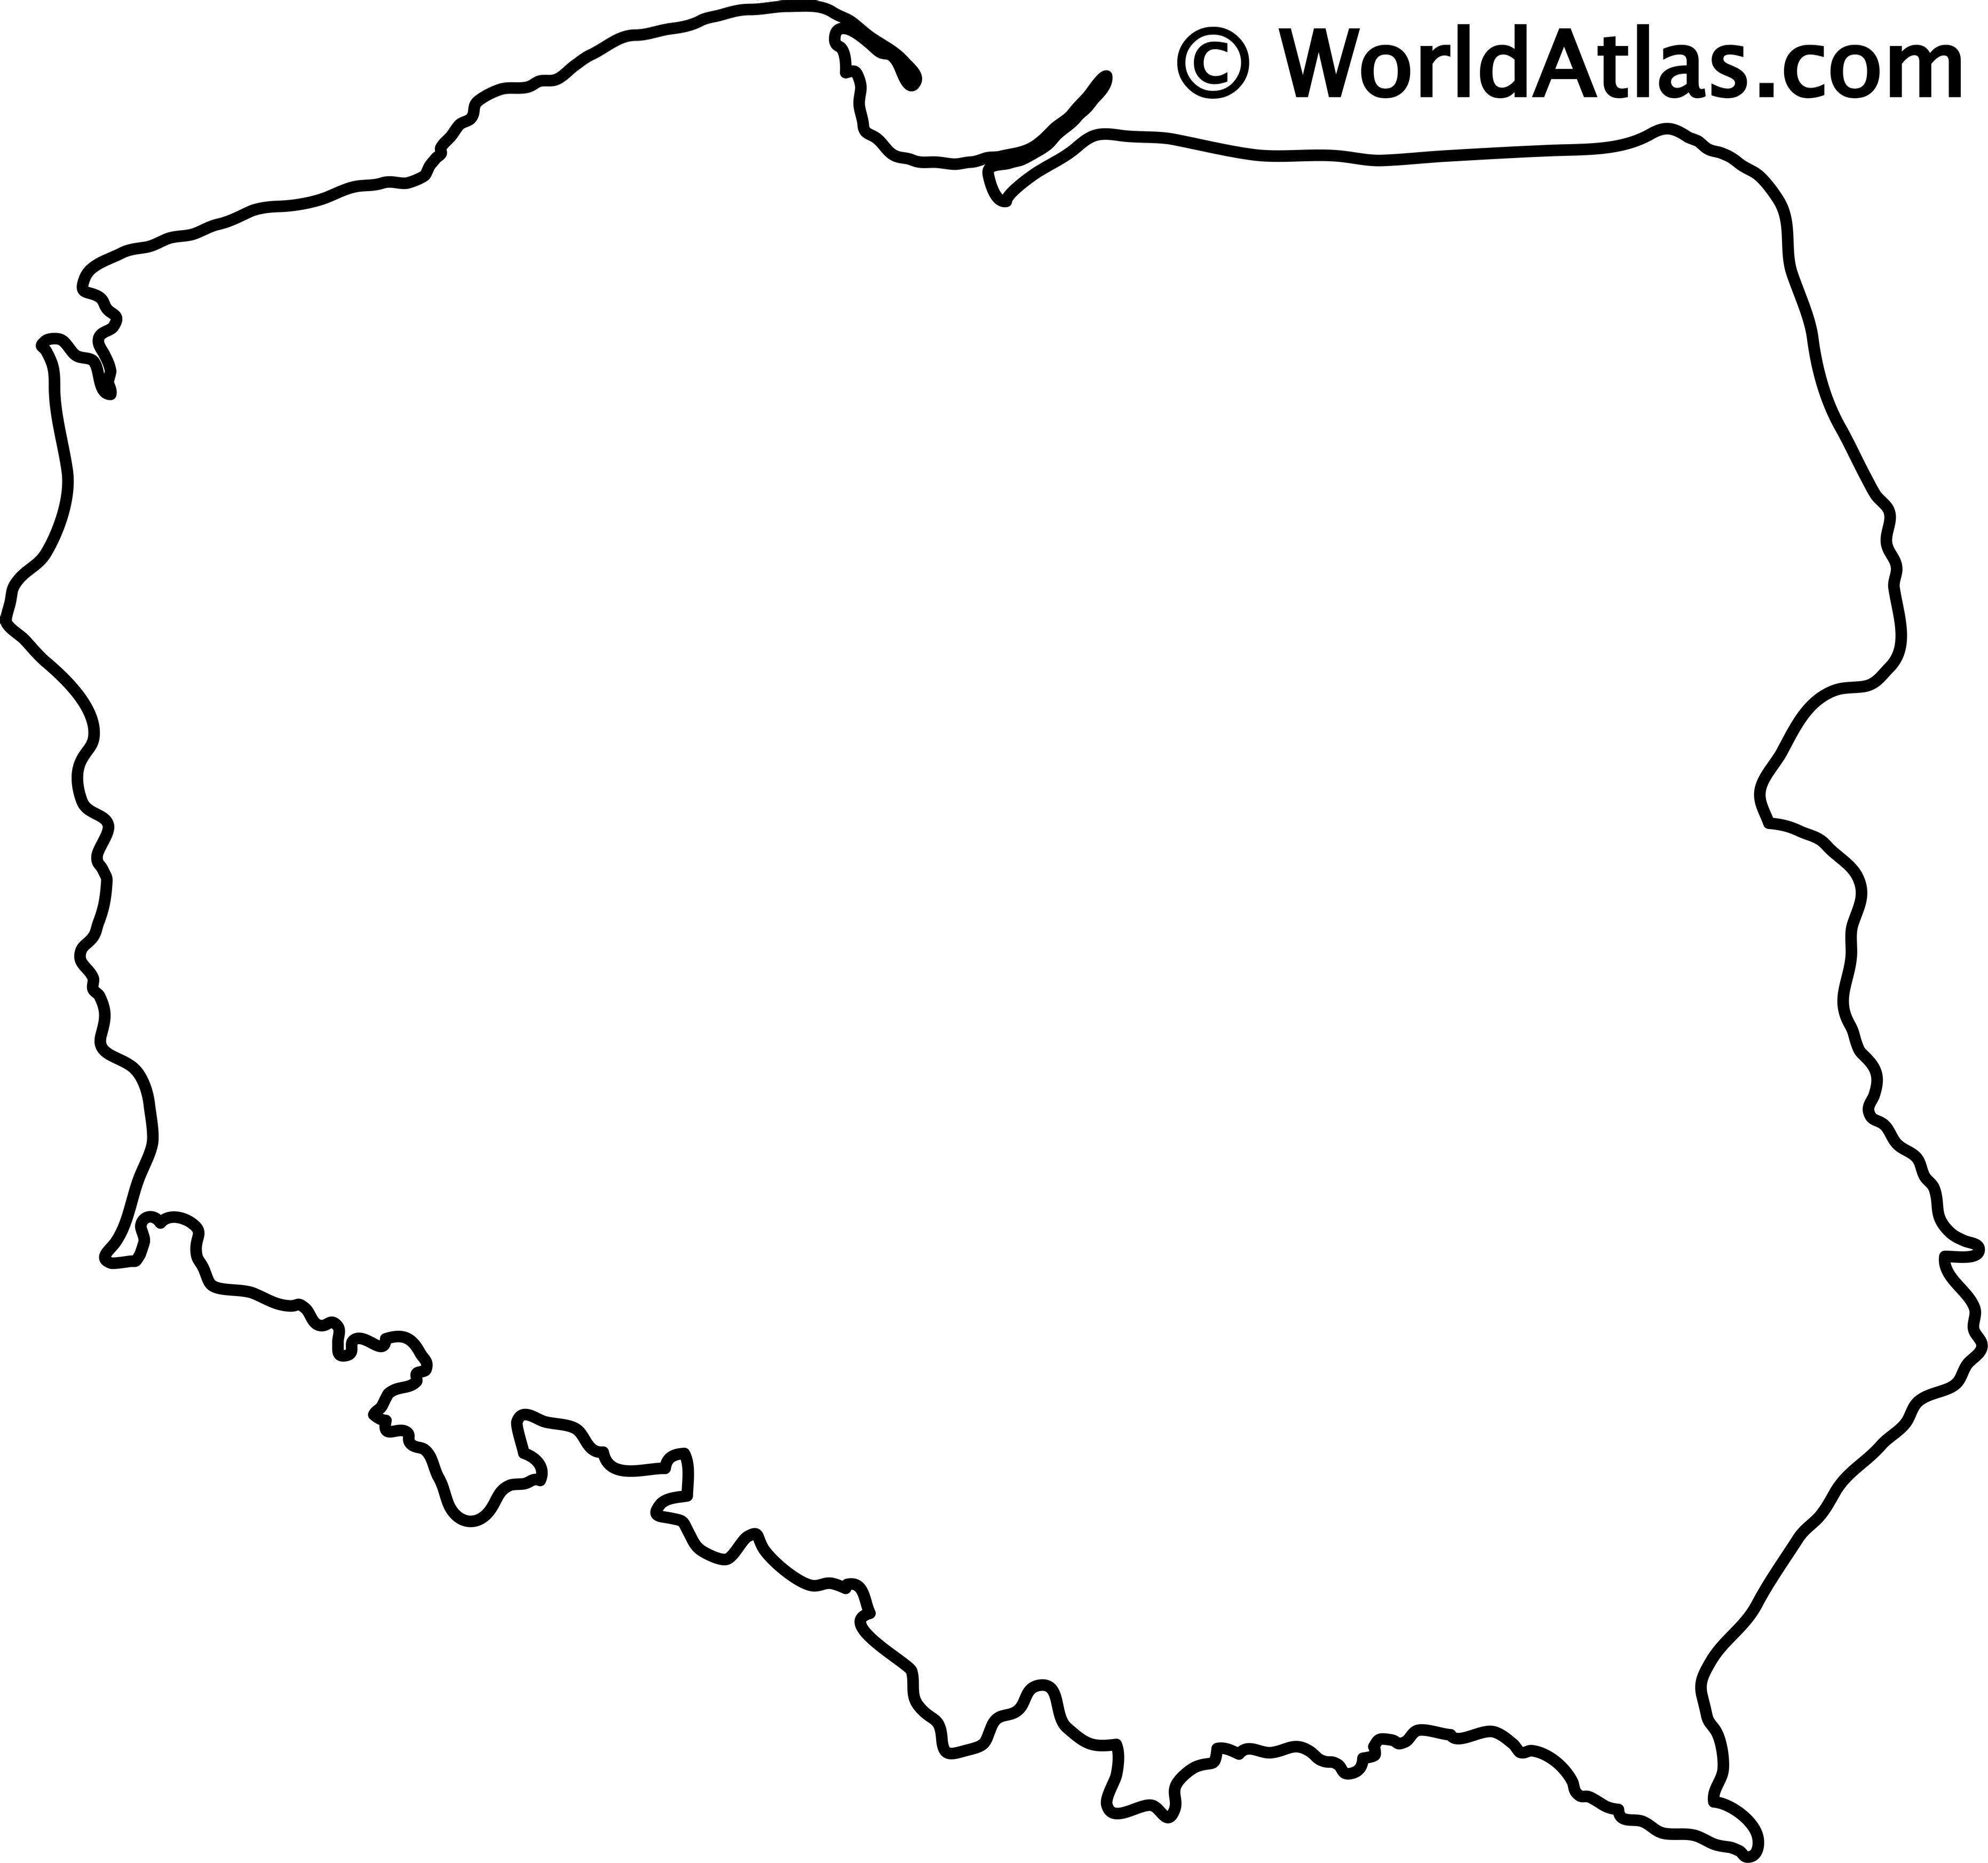 Blank Outline Map of Poland